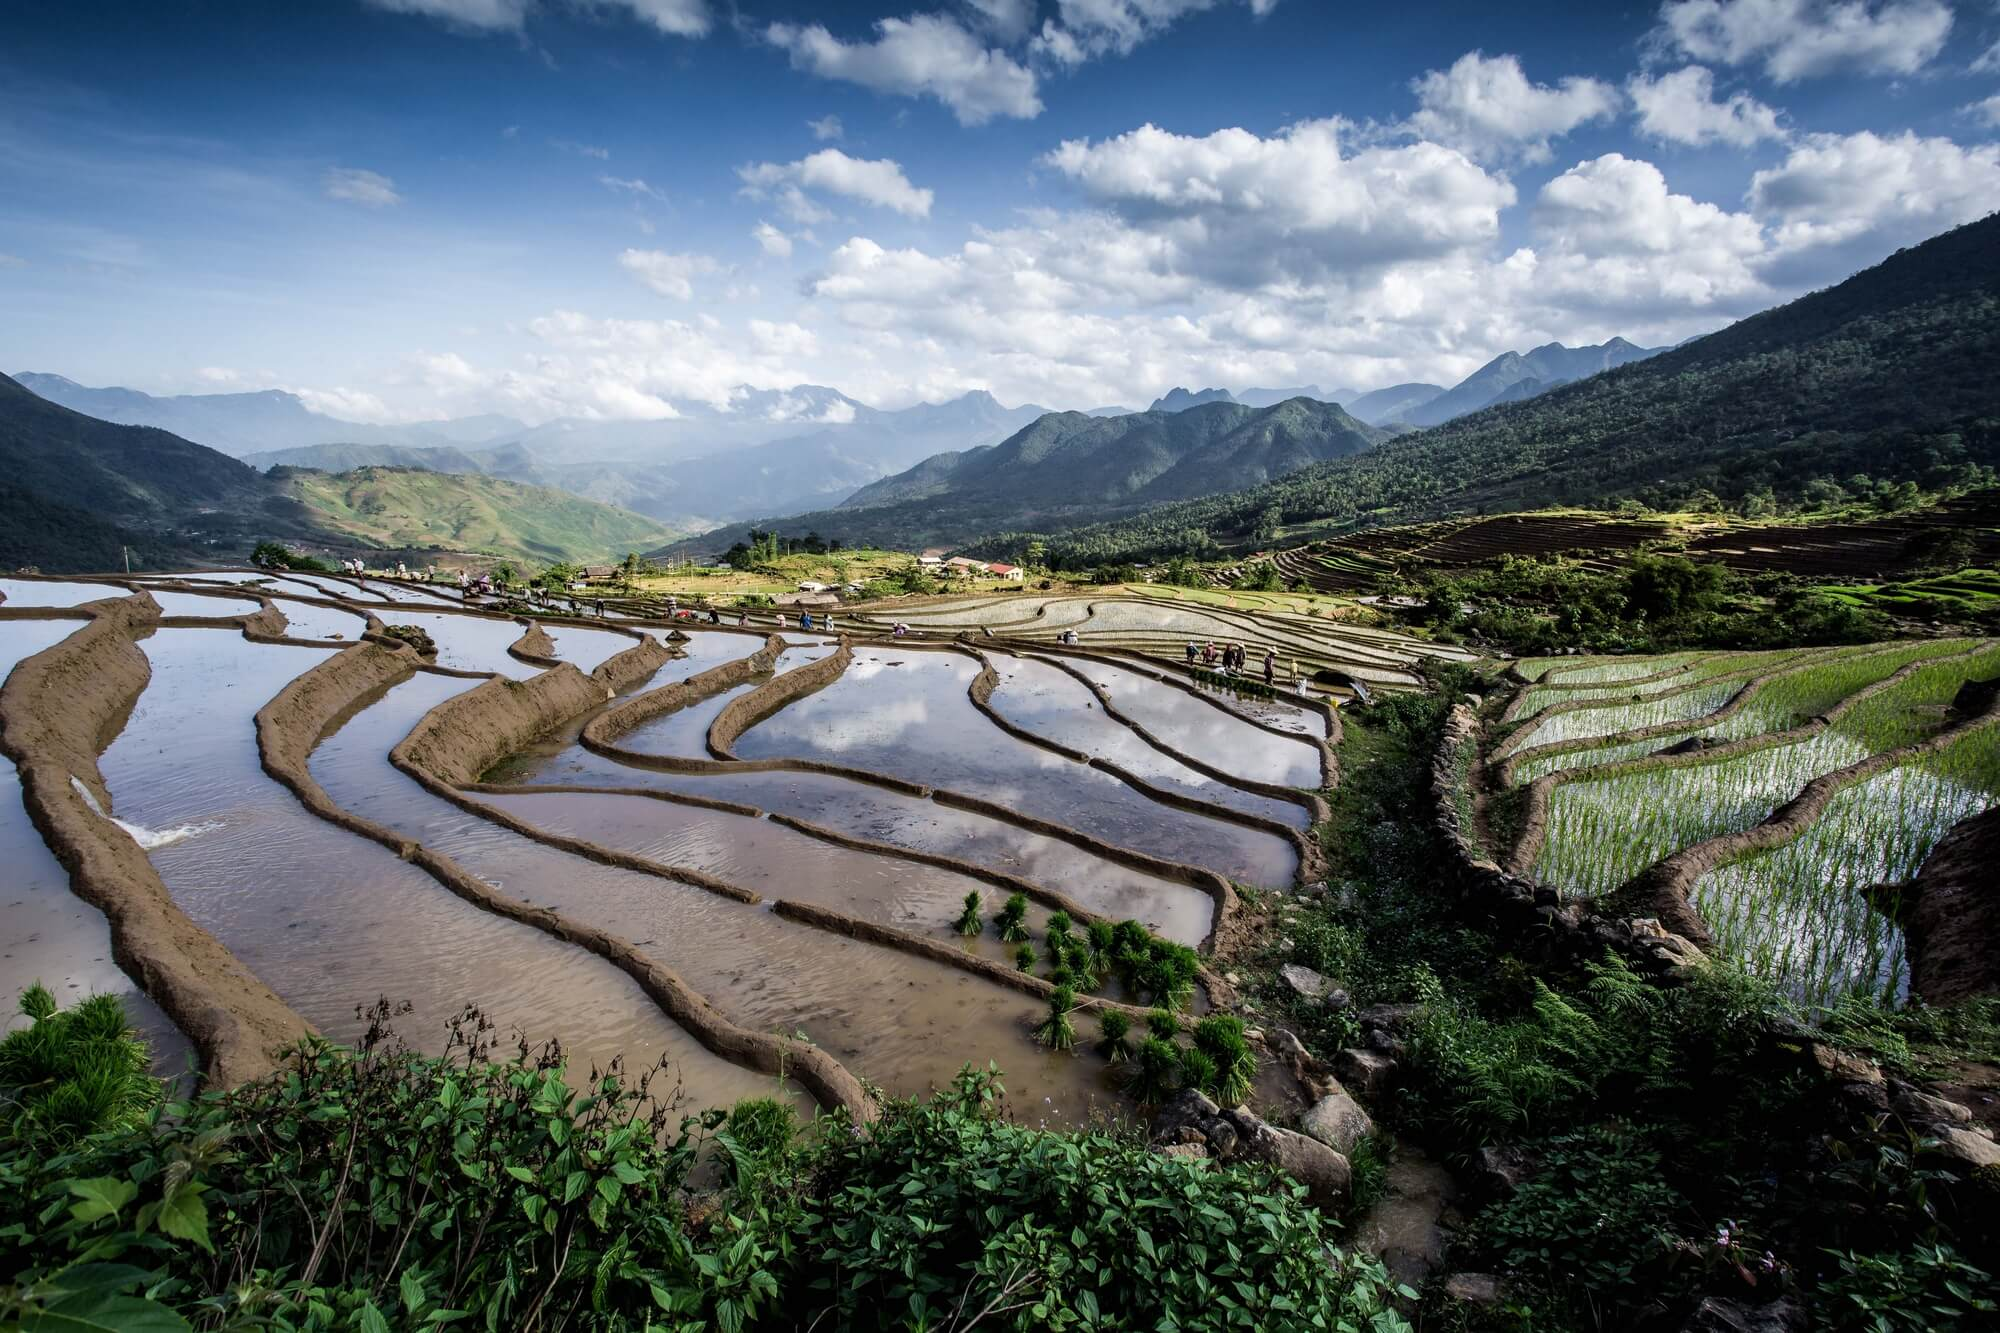 Vietnam Rice Terrace Plantation Season